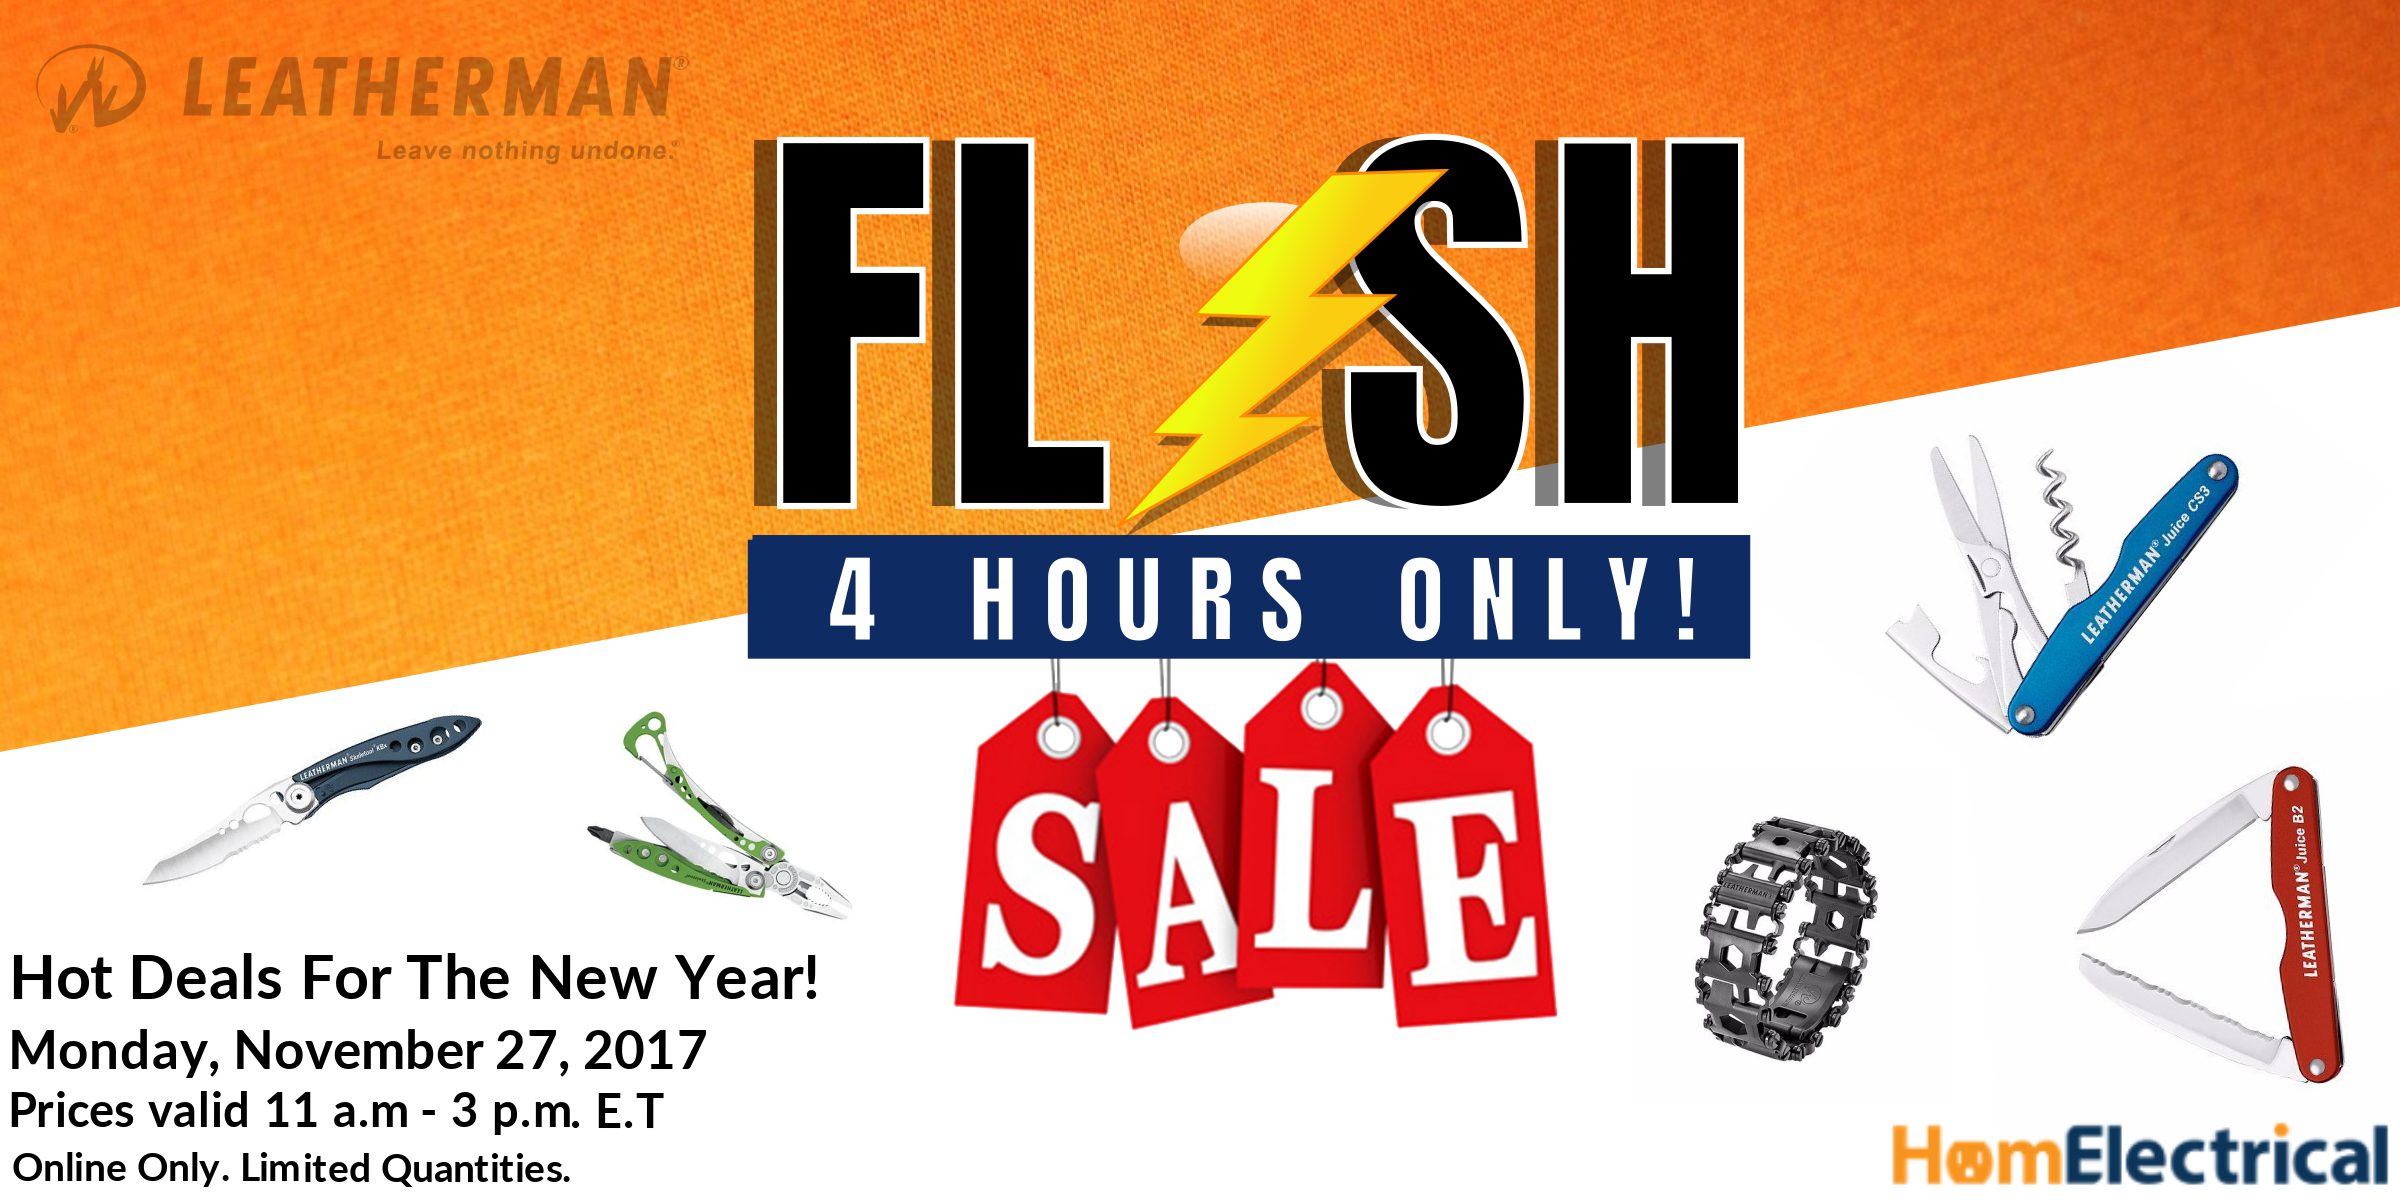 Cyber Monday Leatherman tools flash sale holiday catalog